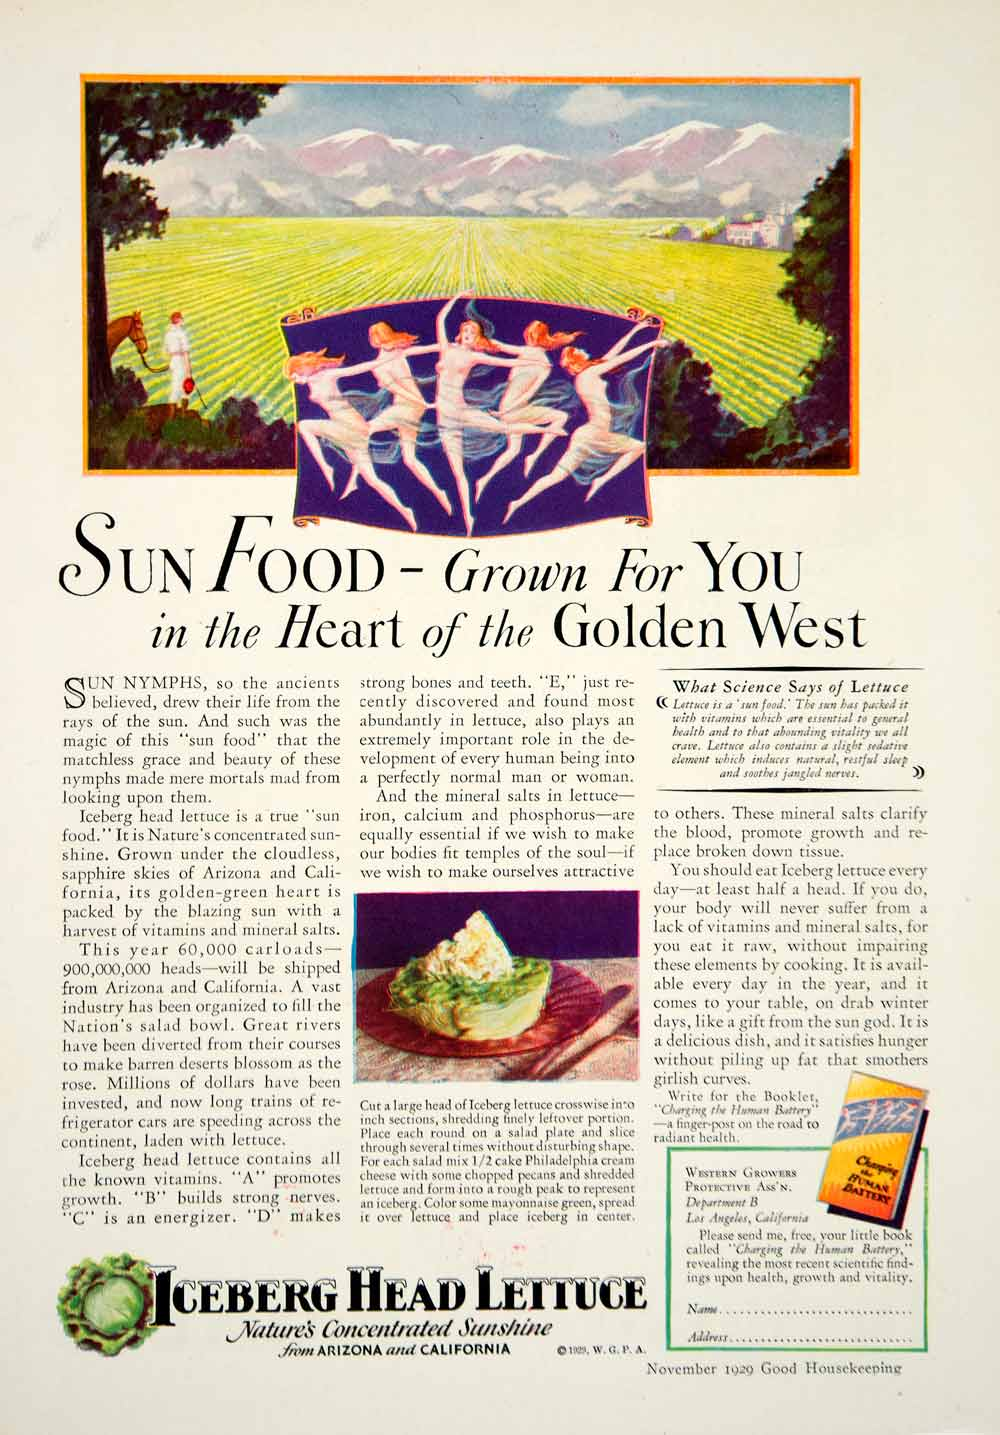 1929 Ad Iceberg Head Lettuce Sun Nymph Dance Produce Agriculture Food Salad YGH3